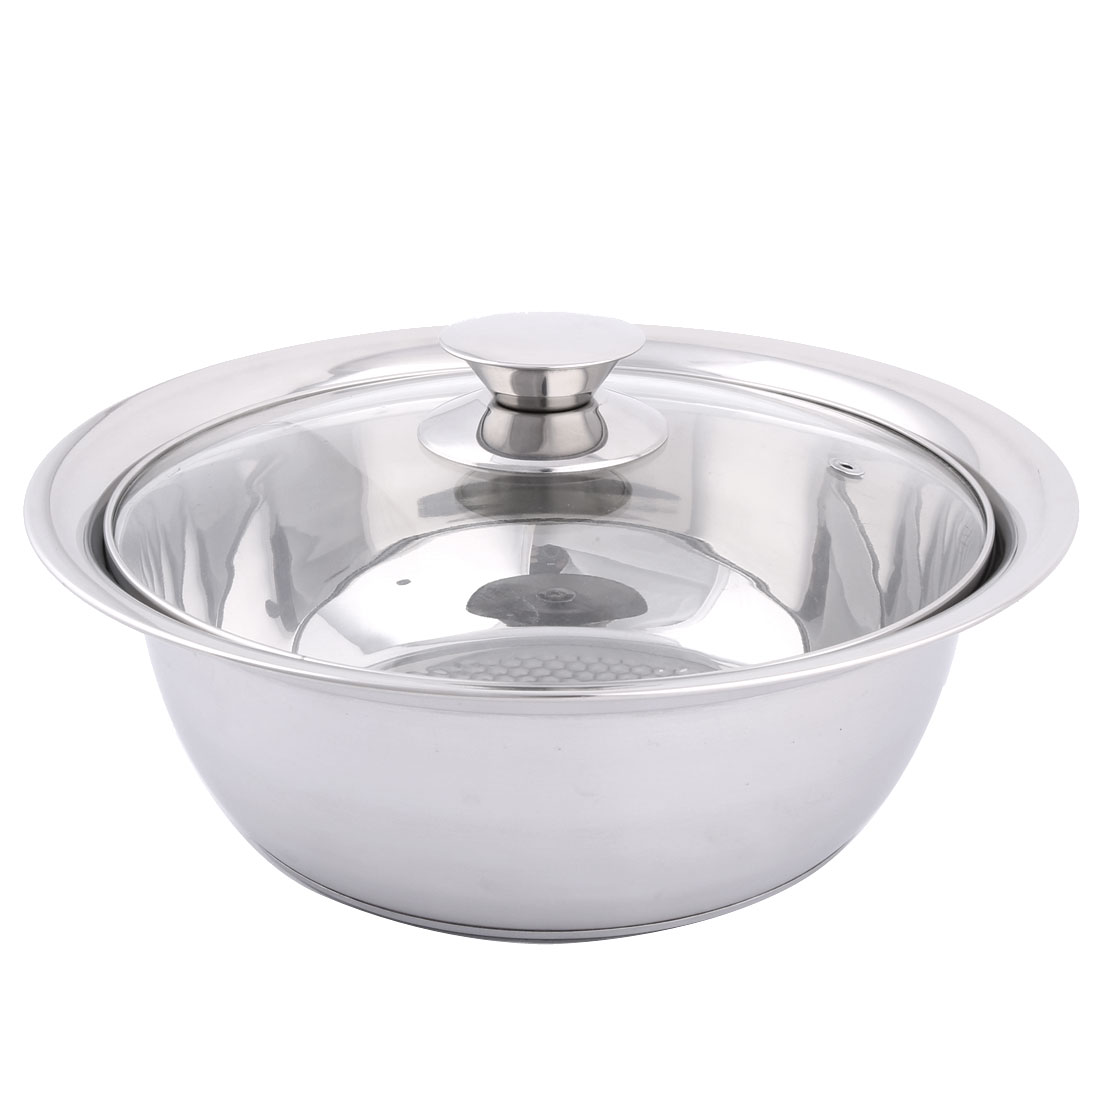 Household Kitchen Glass Lid Stainless Steel Cookware Stockpot Pot 24cm Dia